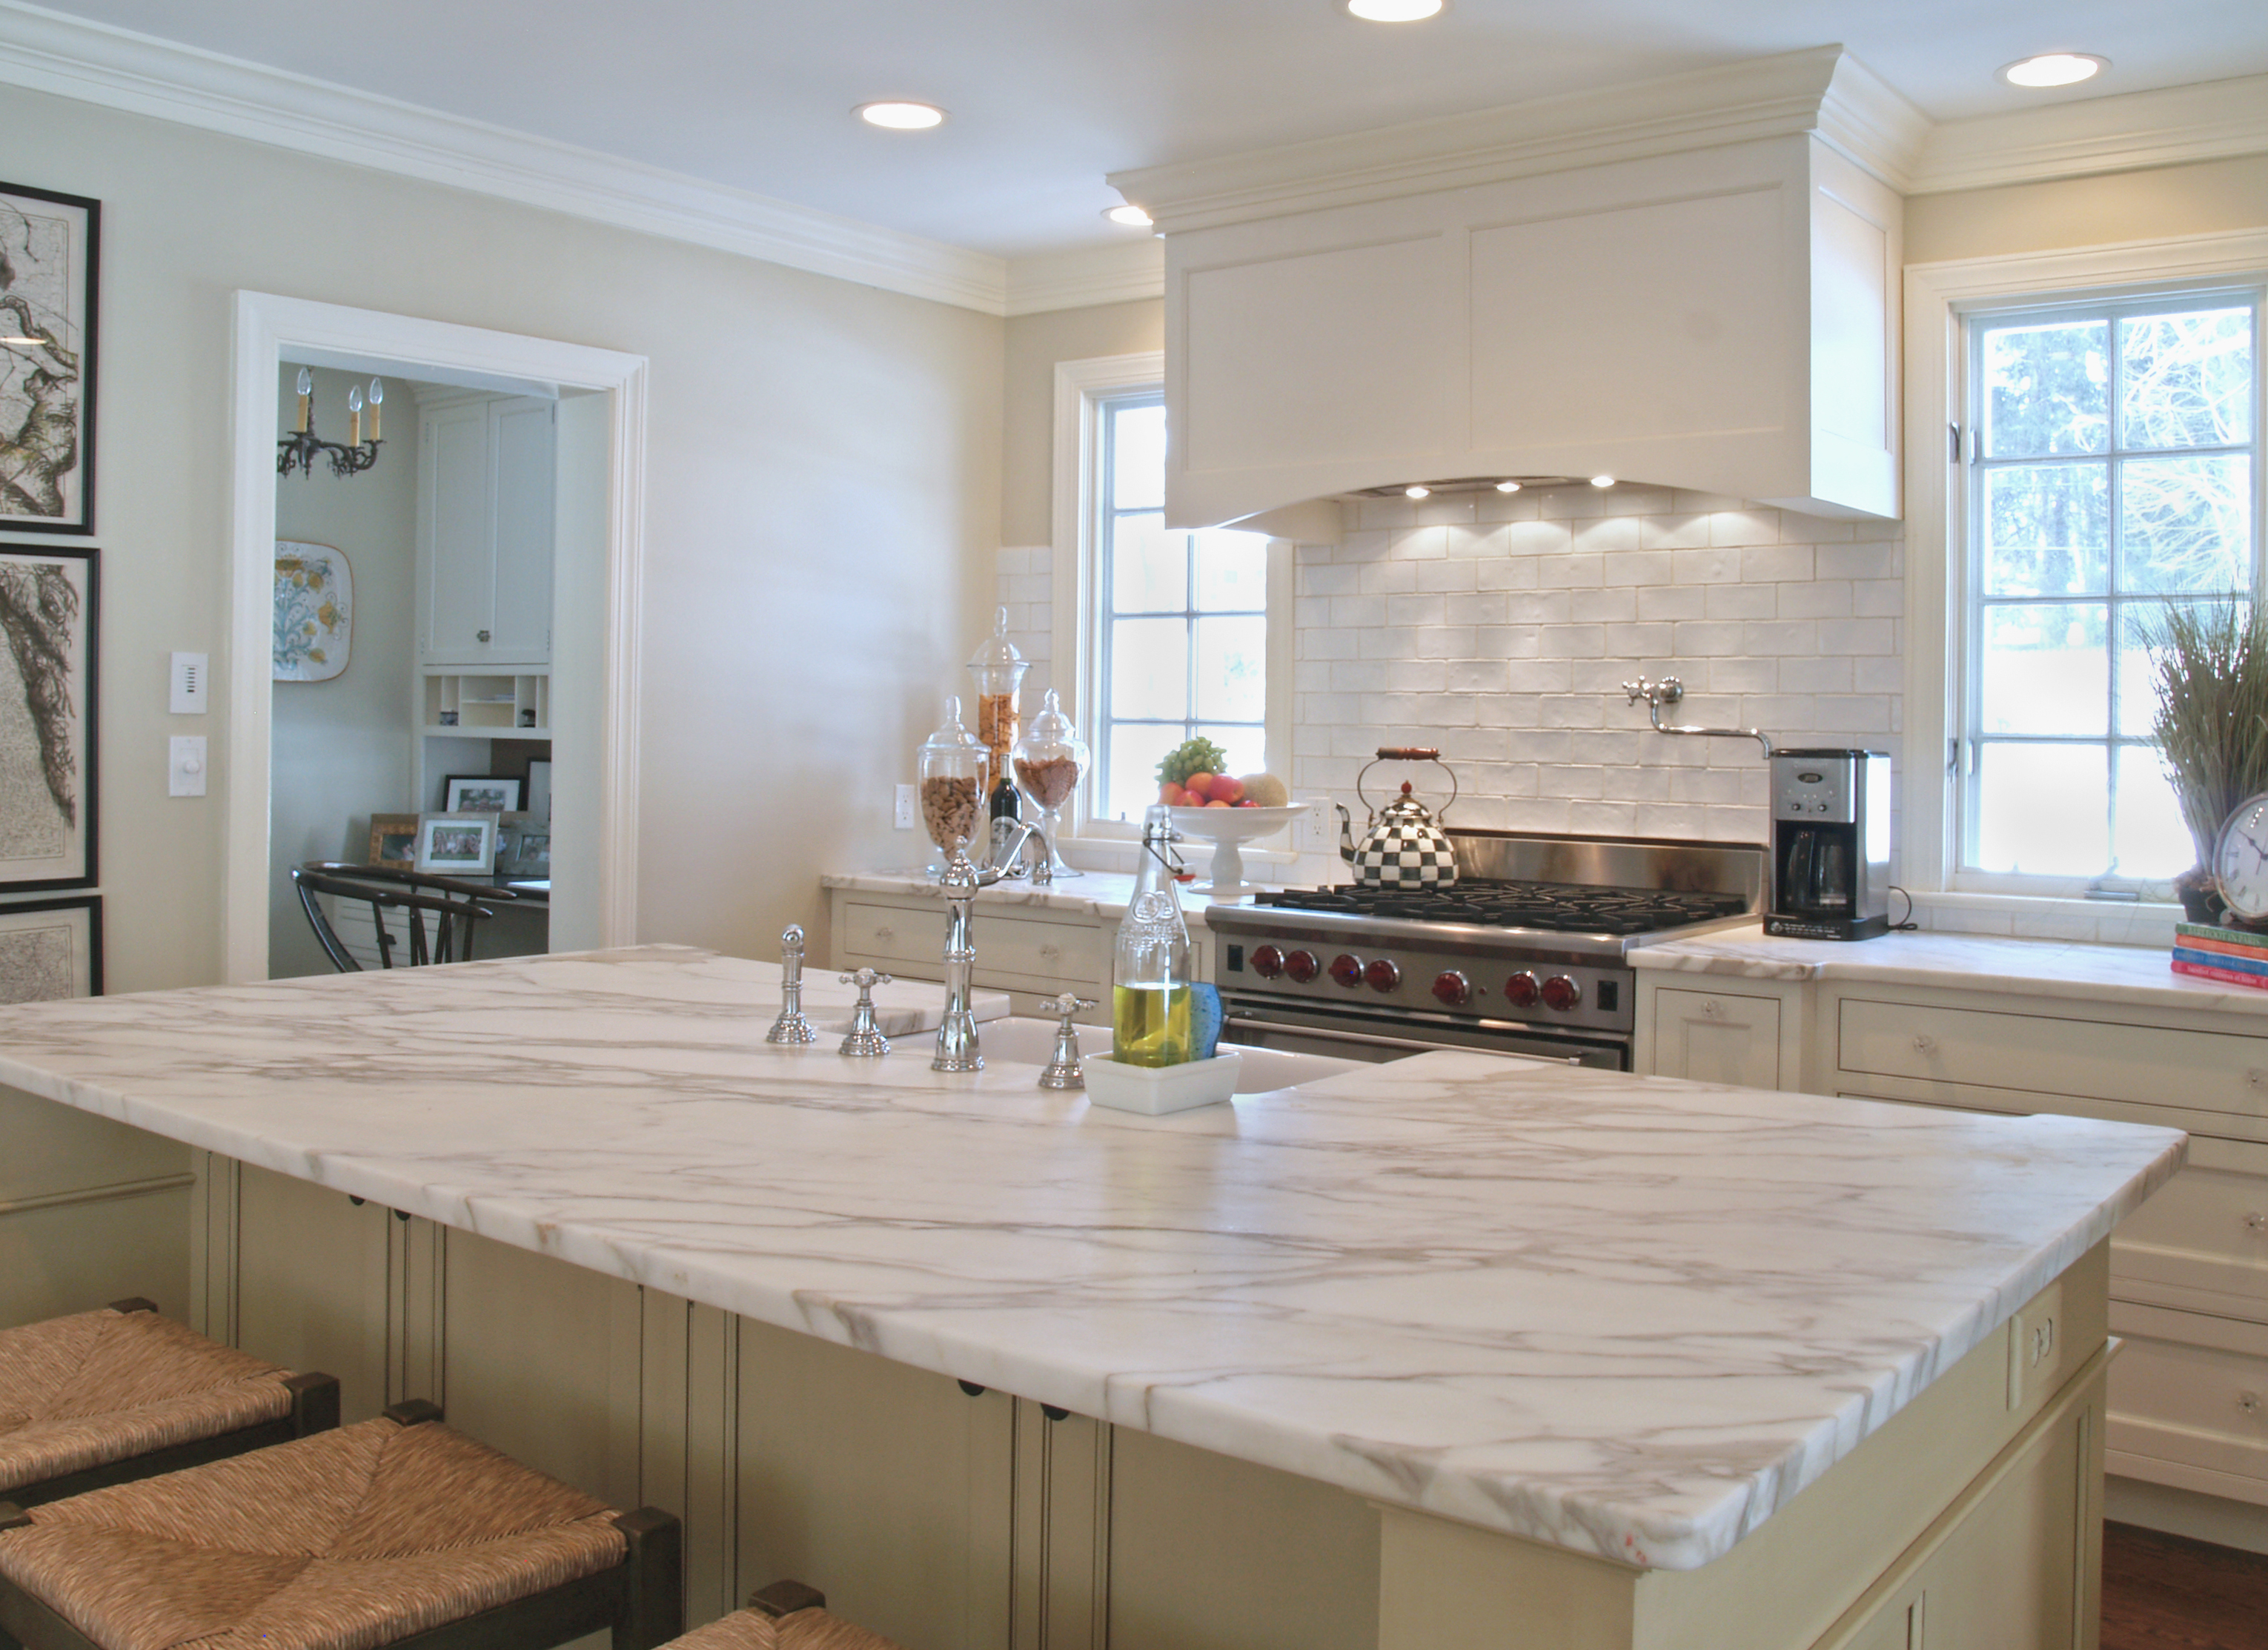 countertops countertopsc granite what design architecture installed do of enjoyable white does cost average countertop how much